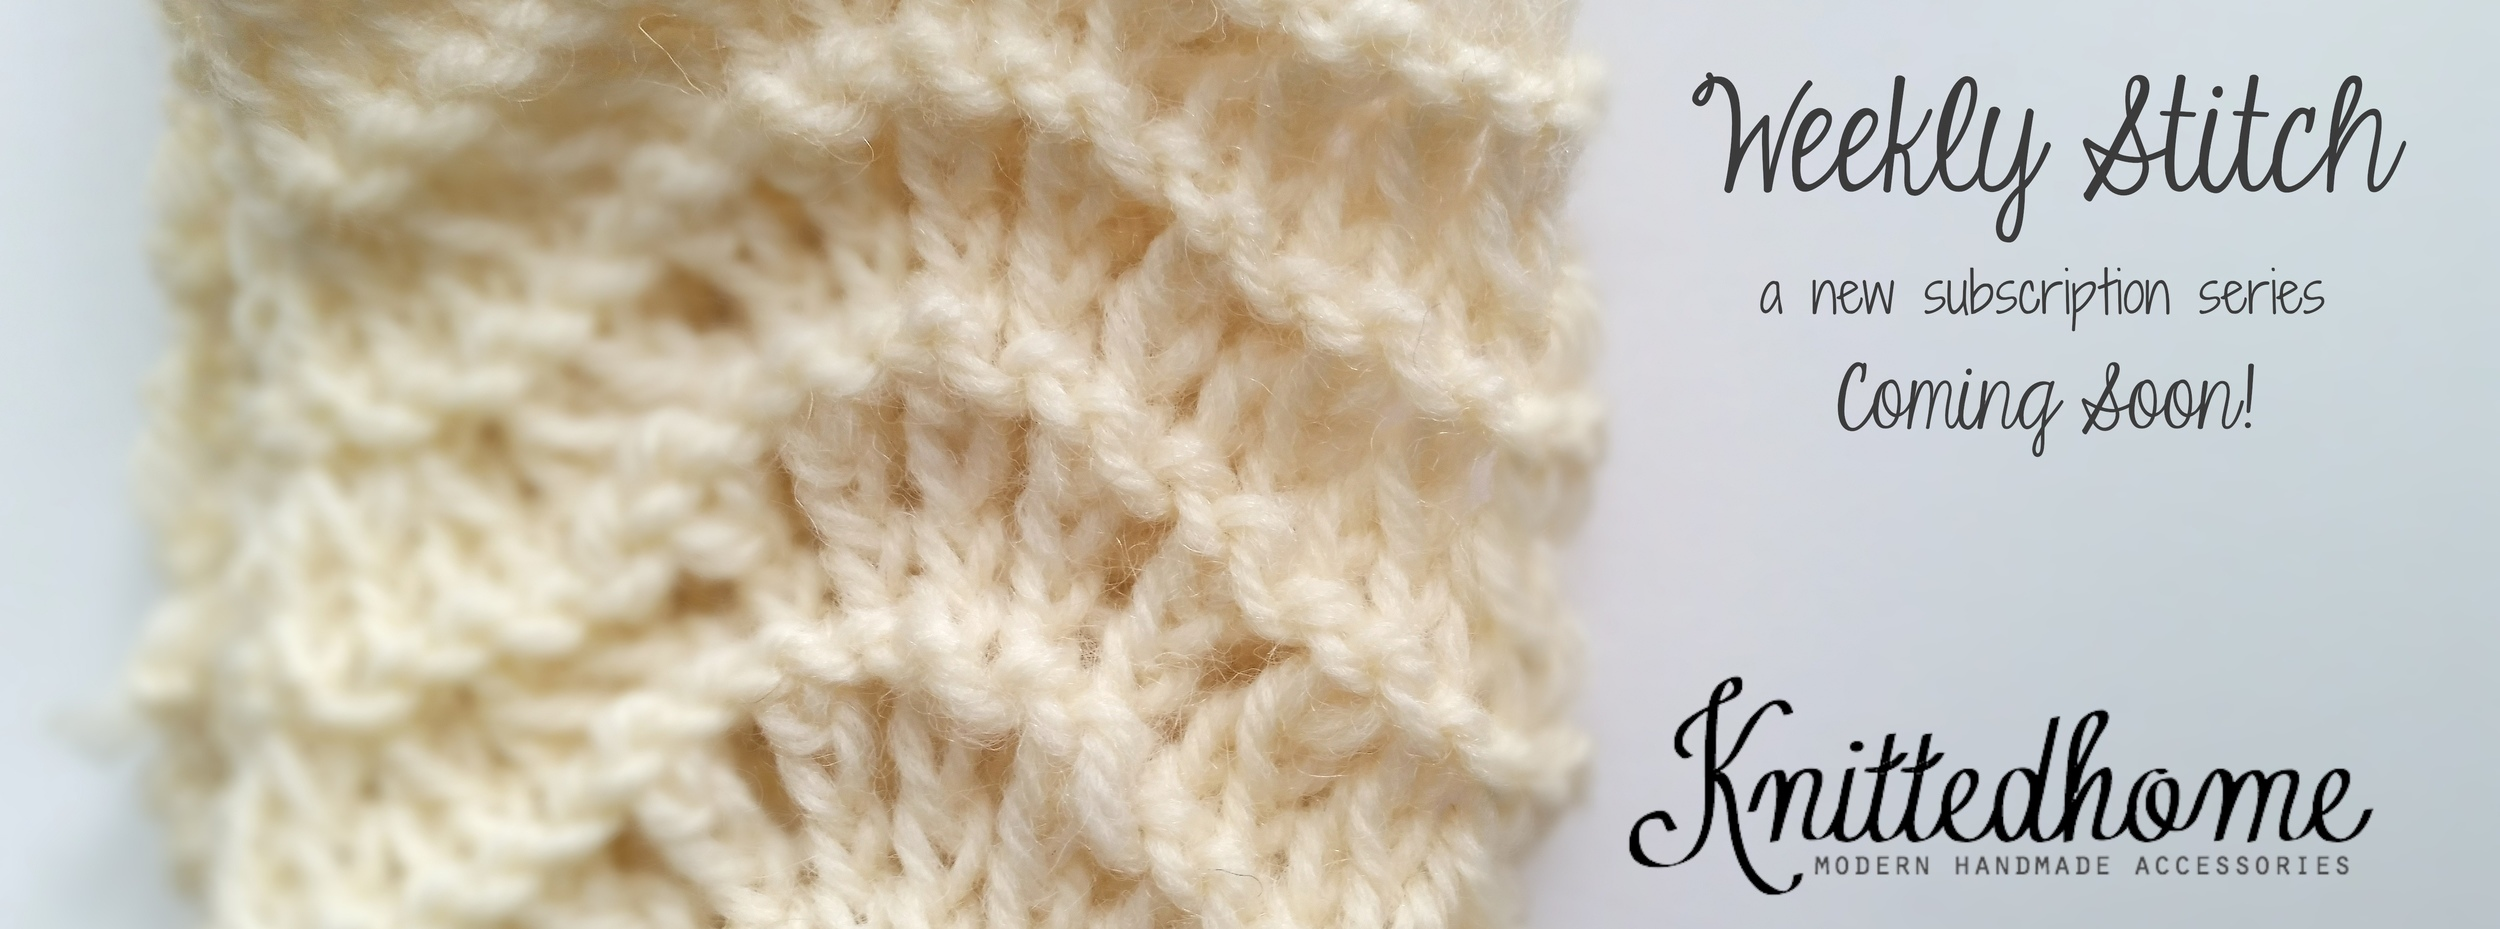 Knittedhome Weekly Stitches